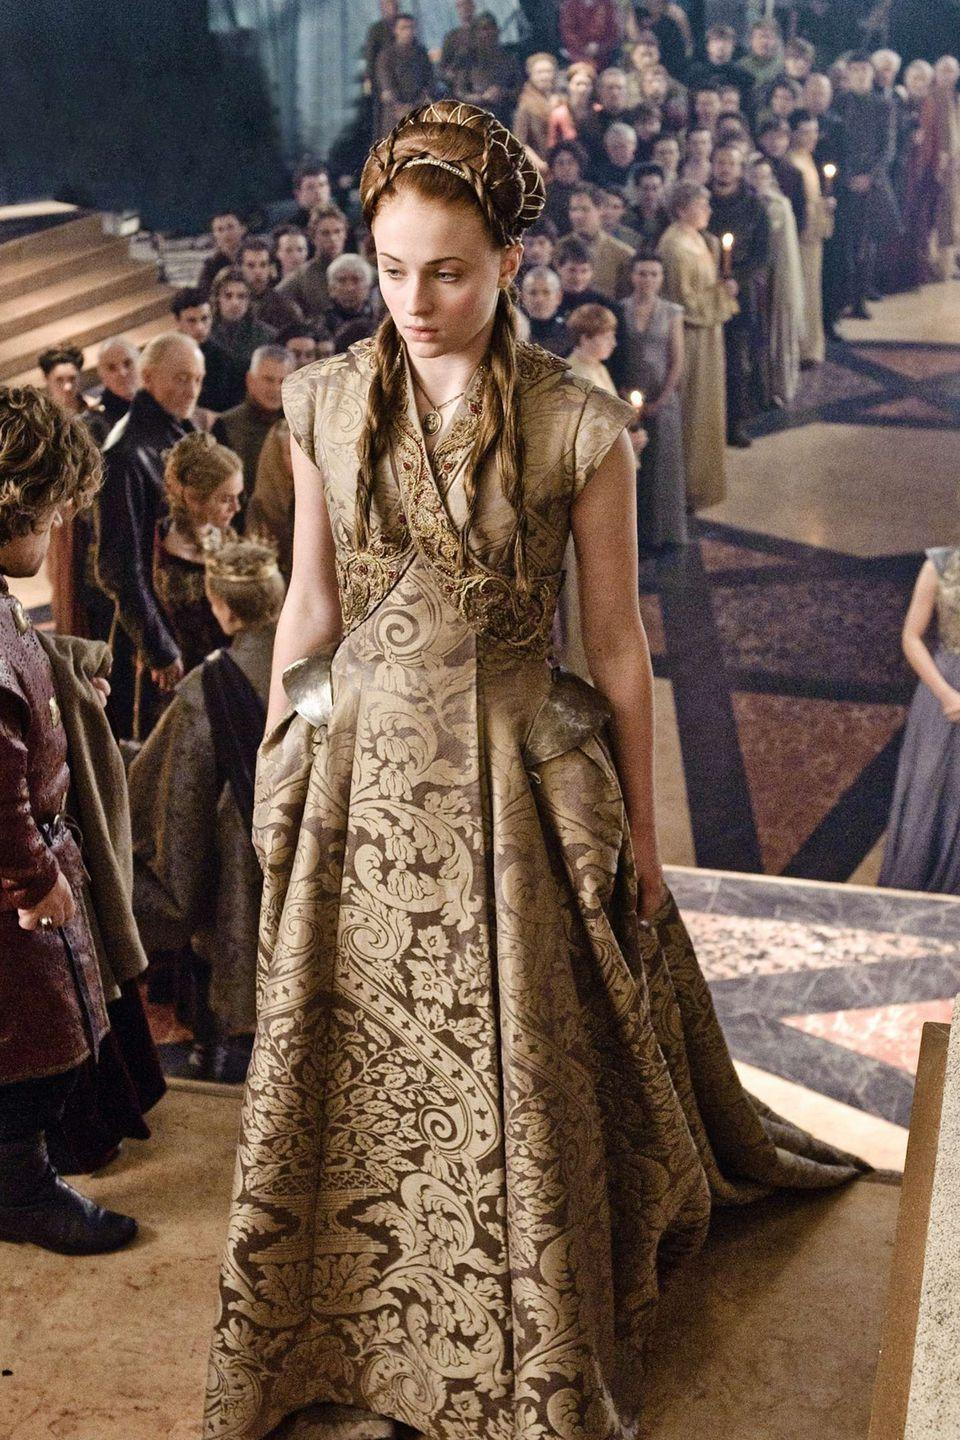 <p>At Sansa's wedding to Tyrion, she wears one of her most beautiful and most symbolic dresses of the series. It's gold (which makes it impossible <em>not</em> to think of the always-debt-paying Lannisters) and trimmed with lions, the Lannister sigil. The family is clearly sending Sansa a message: you belong to us now. </p>